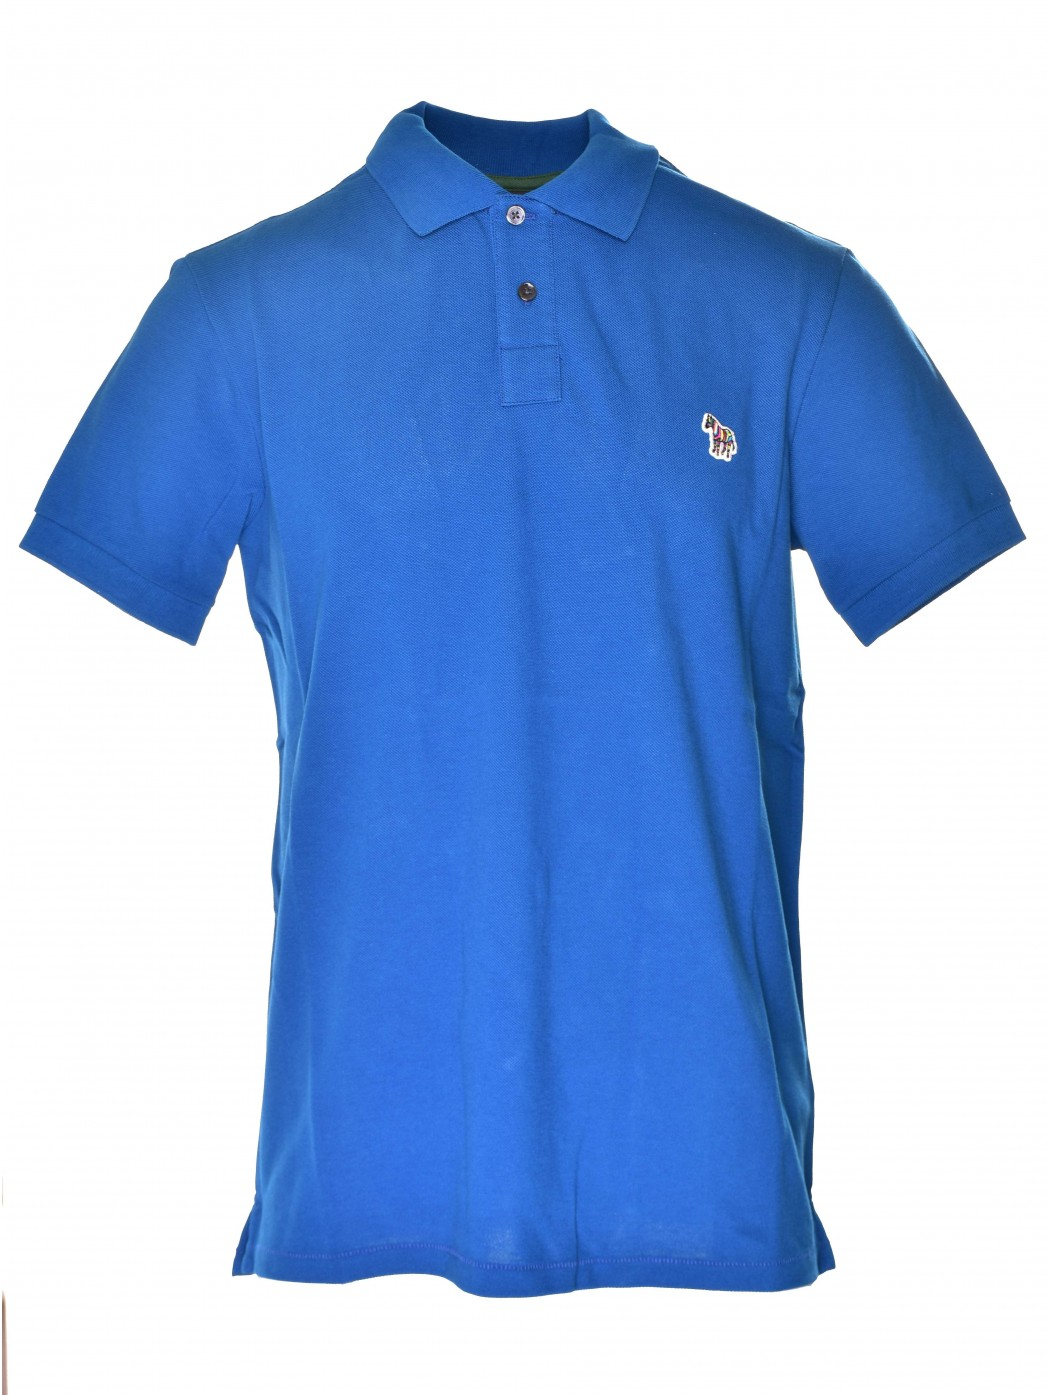 PAUL SMITH PUXD183 45 POLO